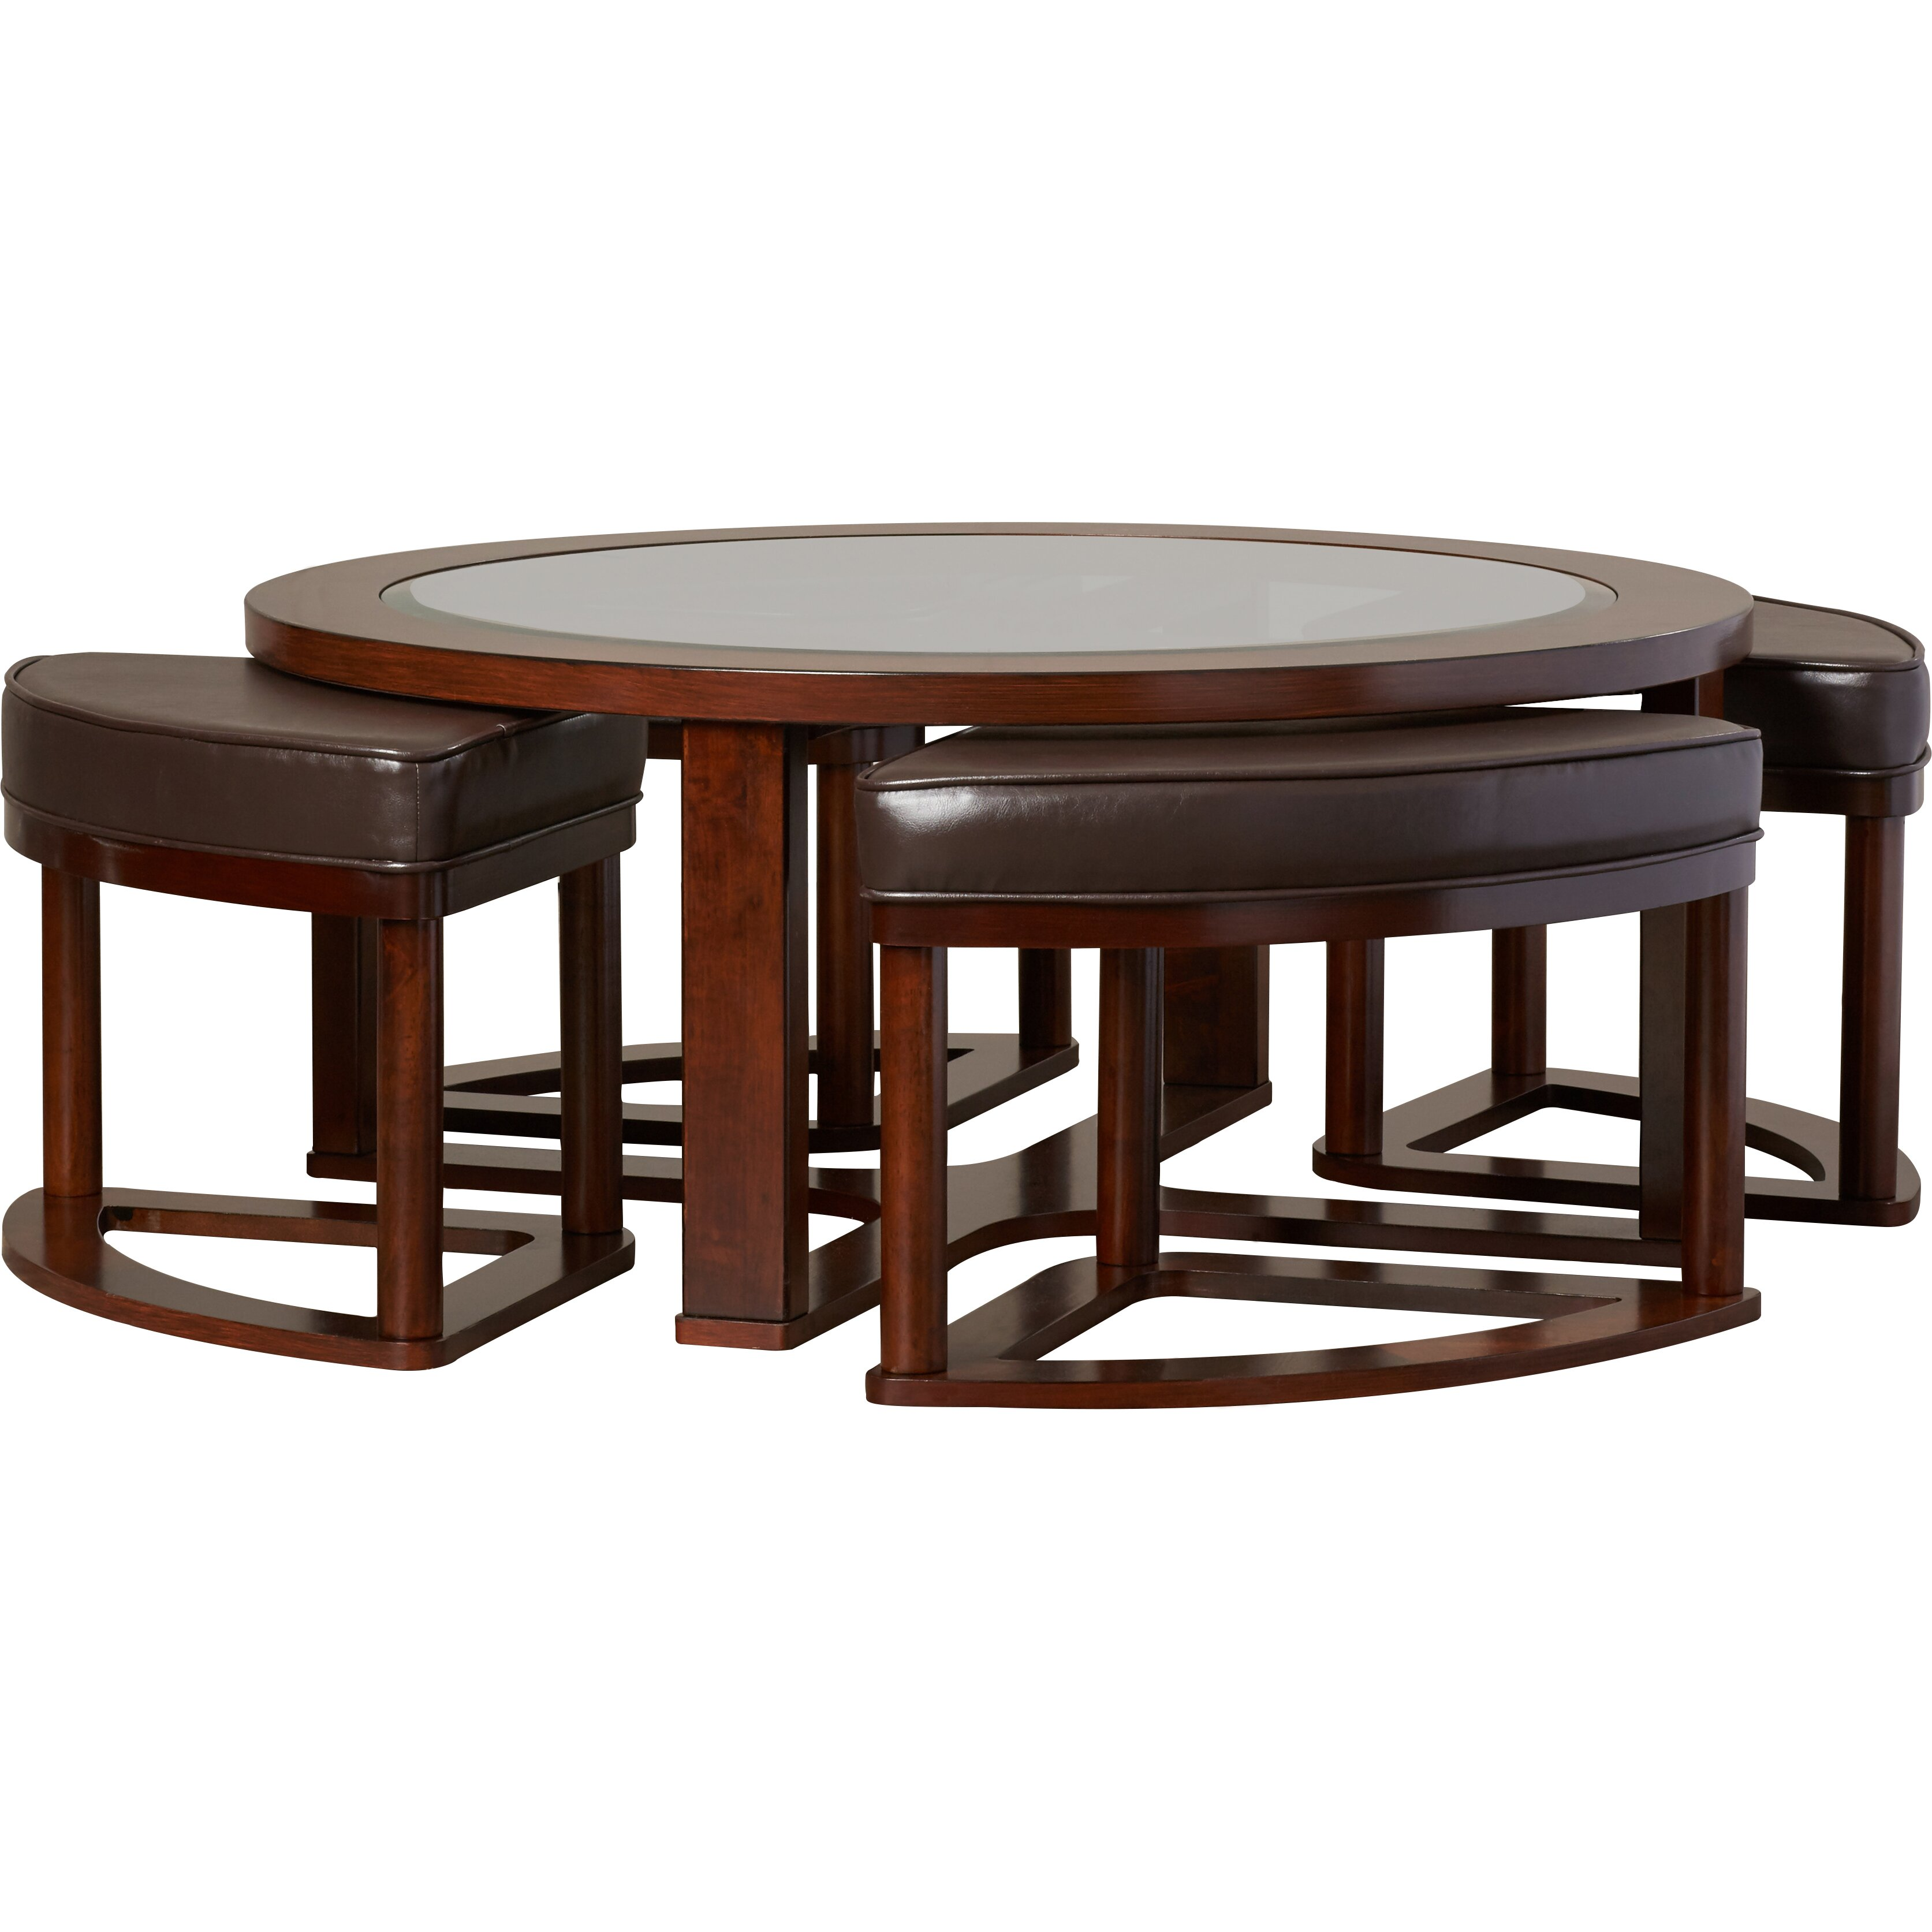 Darby Home Co Eastin 5 Piece Coffee Table Stool Set